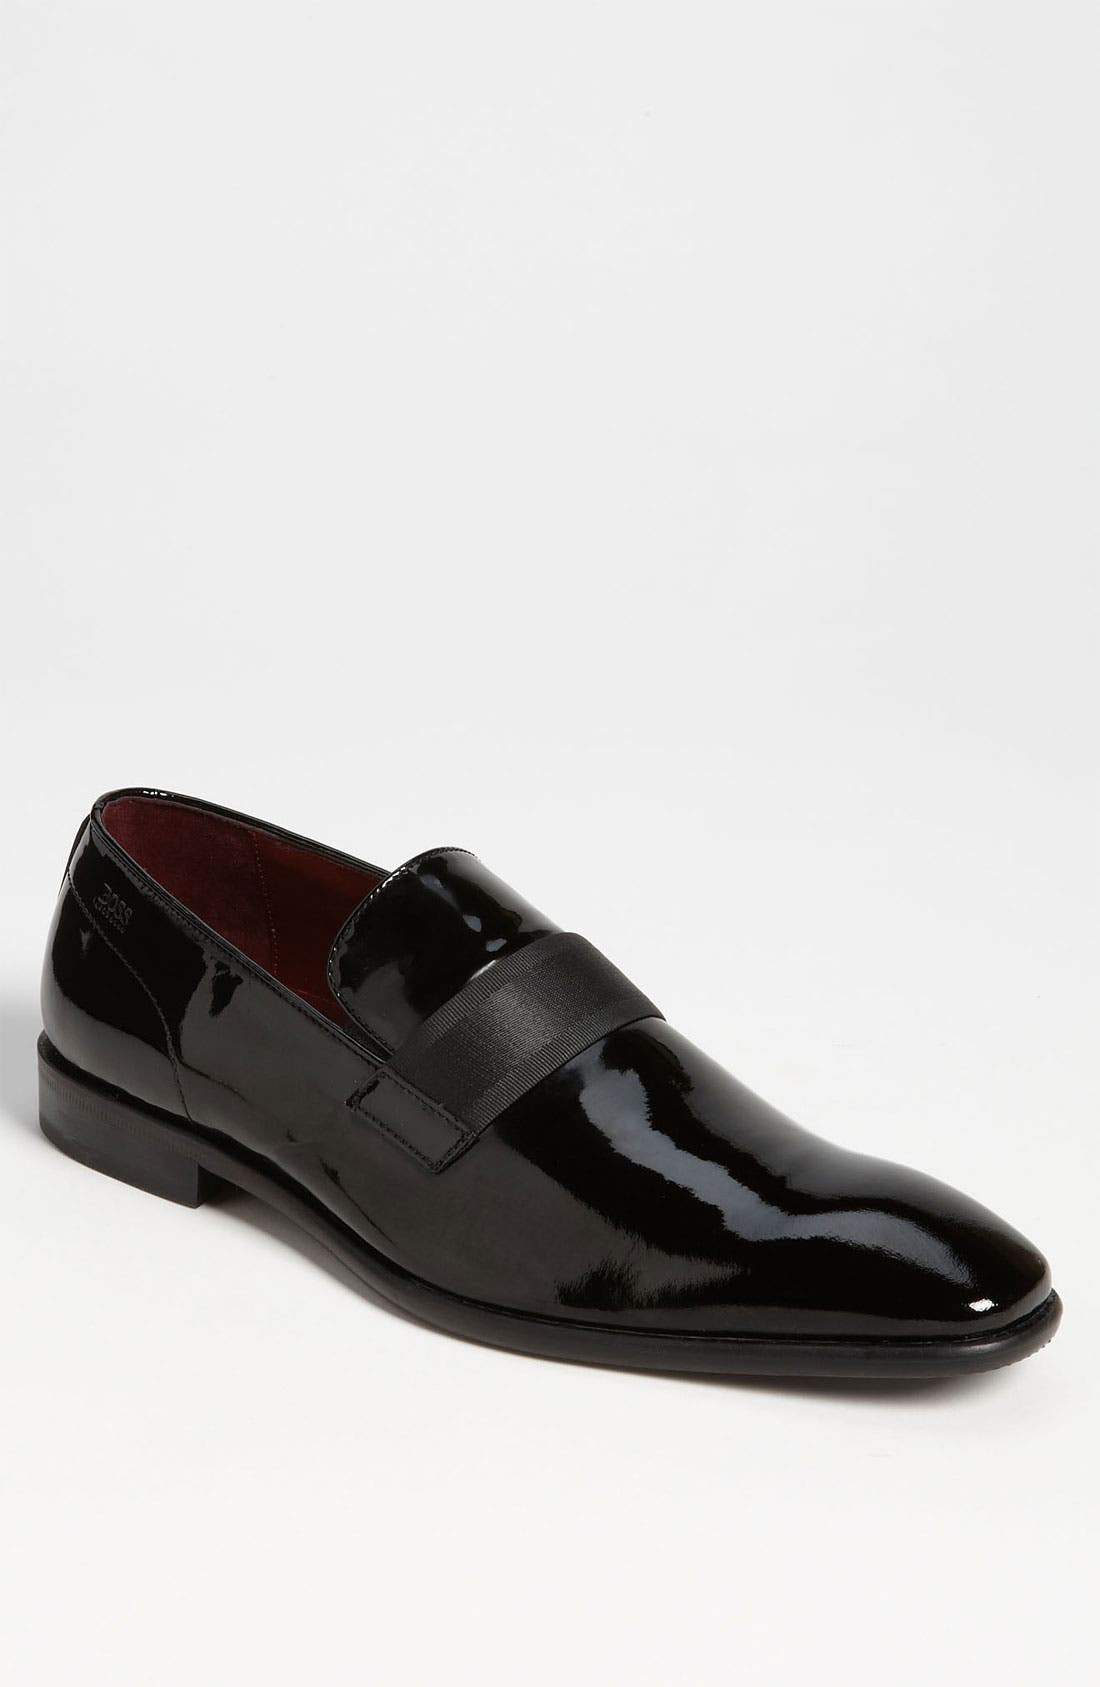 Alternate Image 1 Selected - BOSS 'Mellion' Patent Loafer (Men)